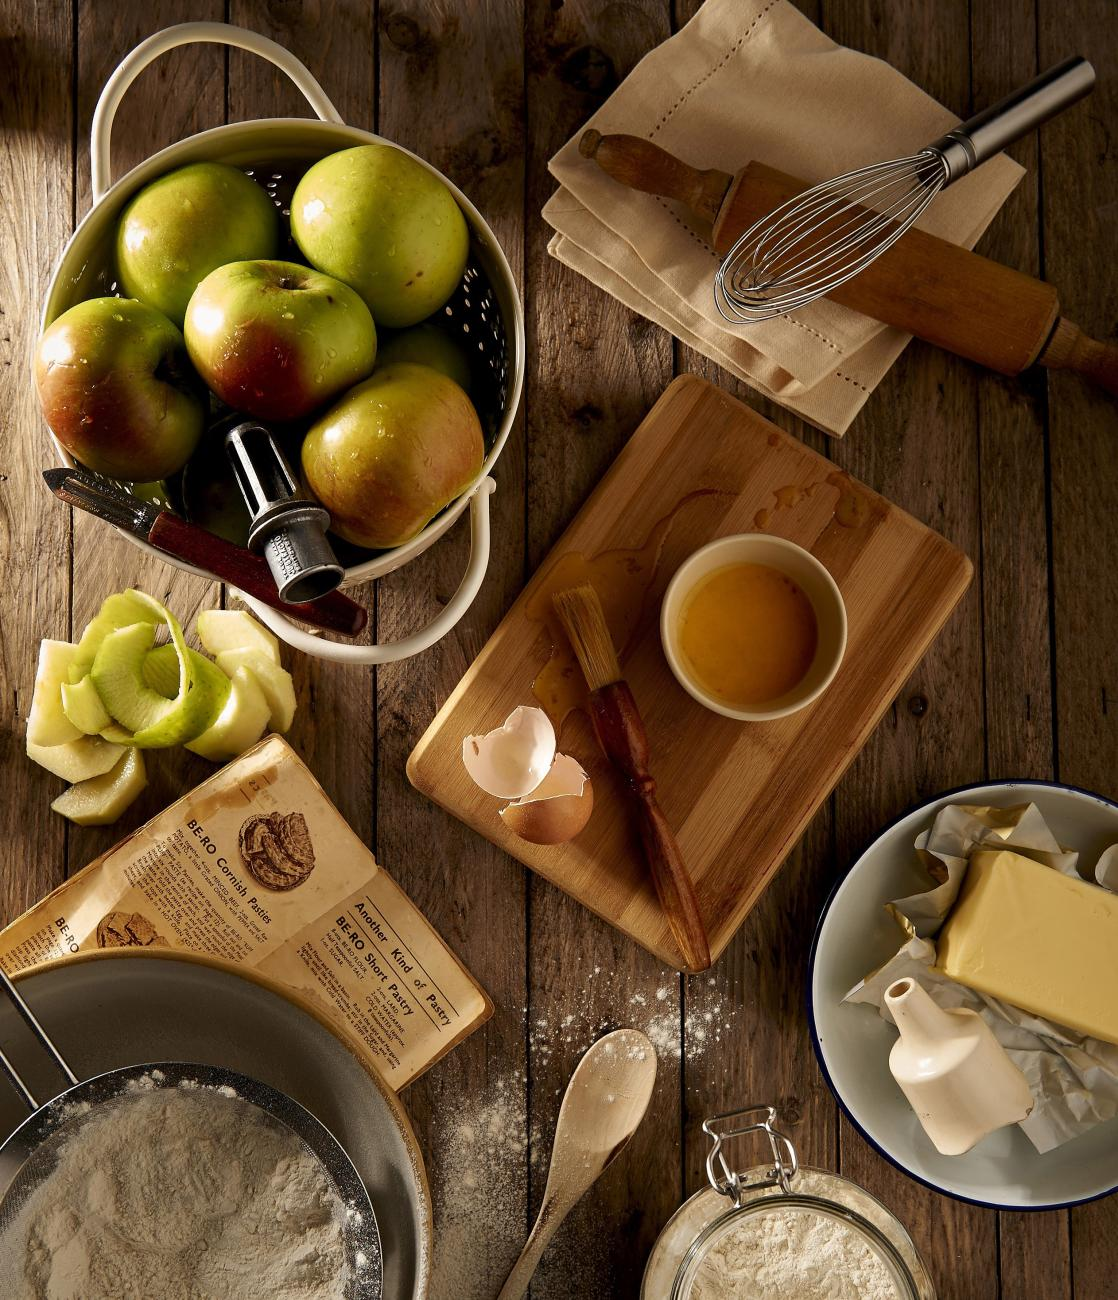 baking-cooking-apples-recipes